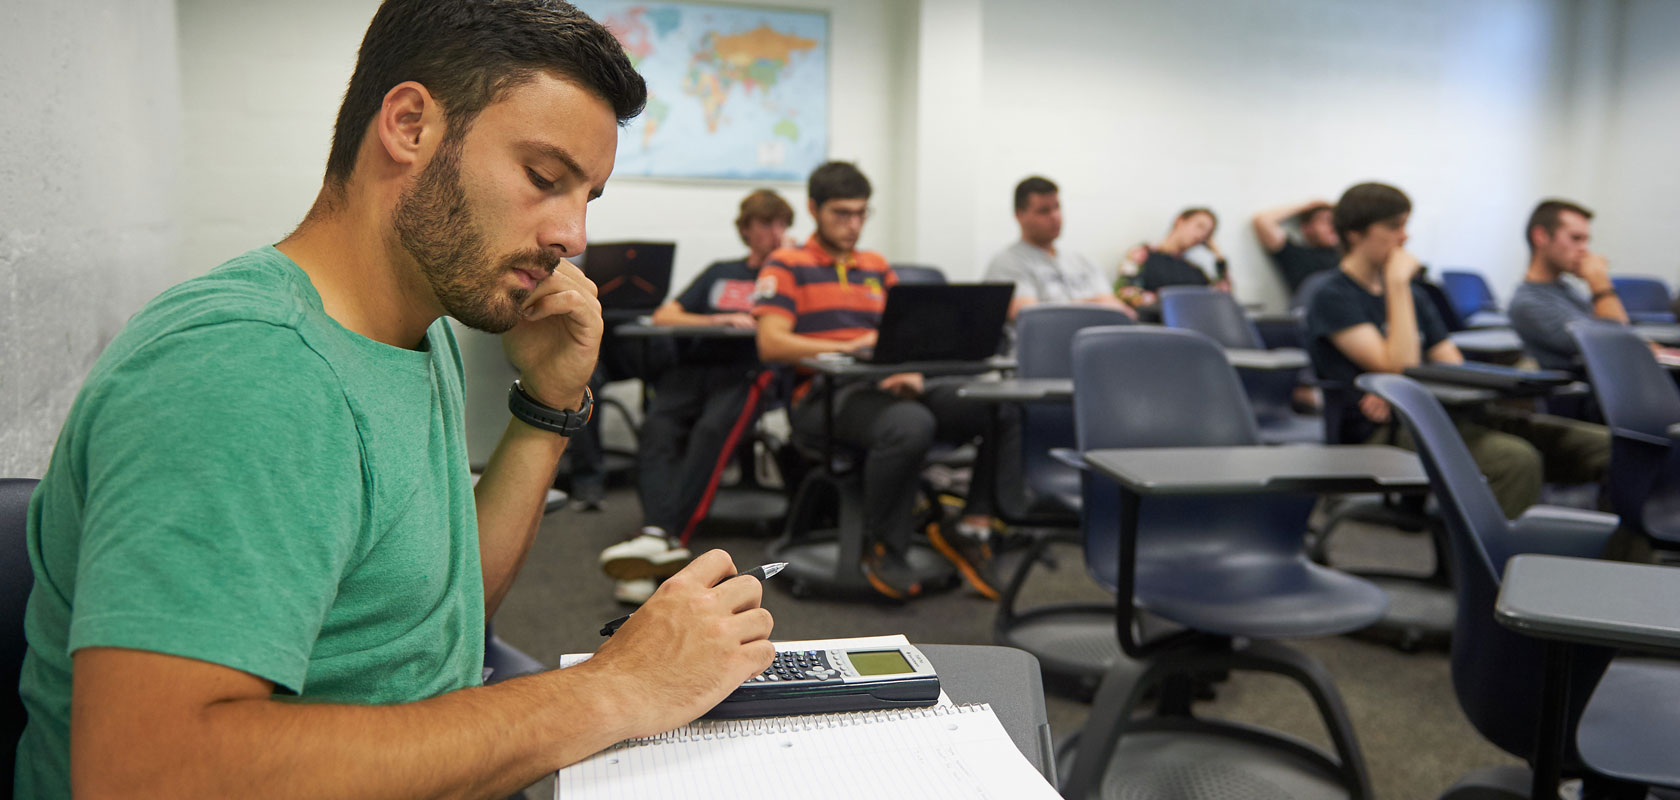 A student uses a calculator during a lecture at the Avery Point Campus